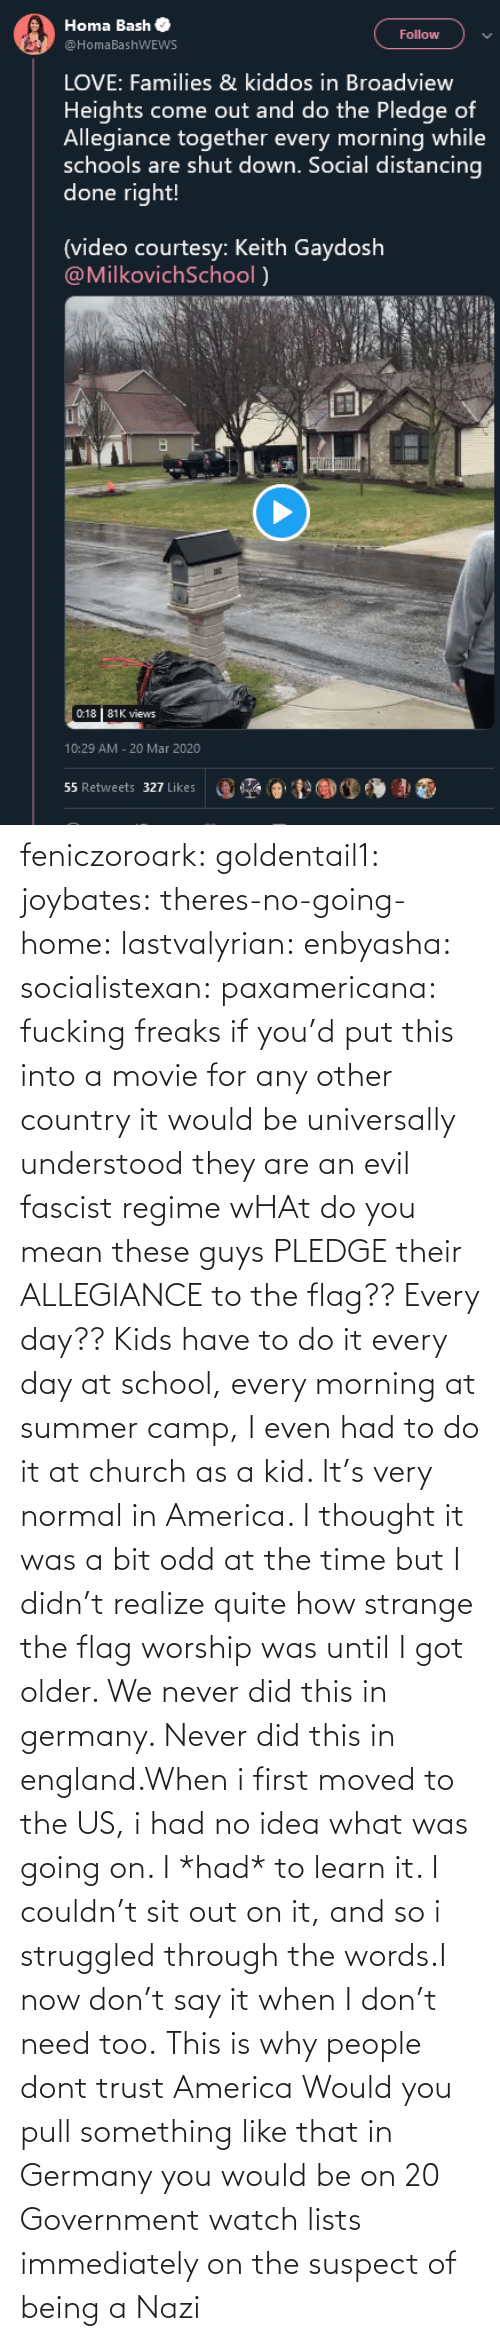 Say it: feniczoroark:  goldentail1:  joybates:  theres-no-going-home:  lastvalyrian:  enbyasha:  socialistexan:  paxamericana: fucking freaks       if you'd put this into a movie for any other country it would be universally understood they are an evil fascist regime    wHAt do you mean these guys PLEDGE their ALLEGIANCE to the flag?? Every day??   Kids have to do it every day at school, every morning at summer camp, I even had to do it at church as a kid. It's very normal in America. I thought it was a bit odd at the time but I didn't realize quite how strange the flag worship was until I got older.    We never did this in germany. Never did this in england.When i first moved to the US, i had no idea what was going on. I *had* to learn it. I couldn't sit out on it, and so i struggled through the words.I now don't say it when I don't need too.   This is why people dont trust America    Would you pull something like that in Germany you would be on 20 Government watch lists immediately on the suspect of being a Nazi